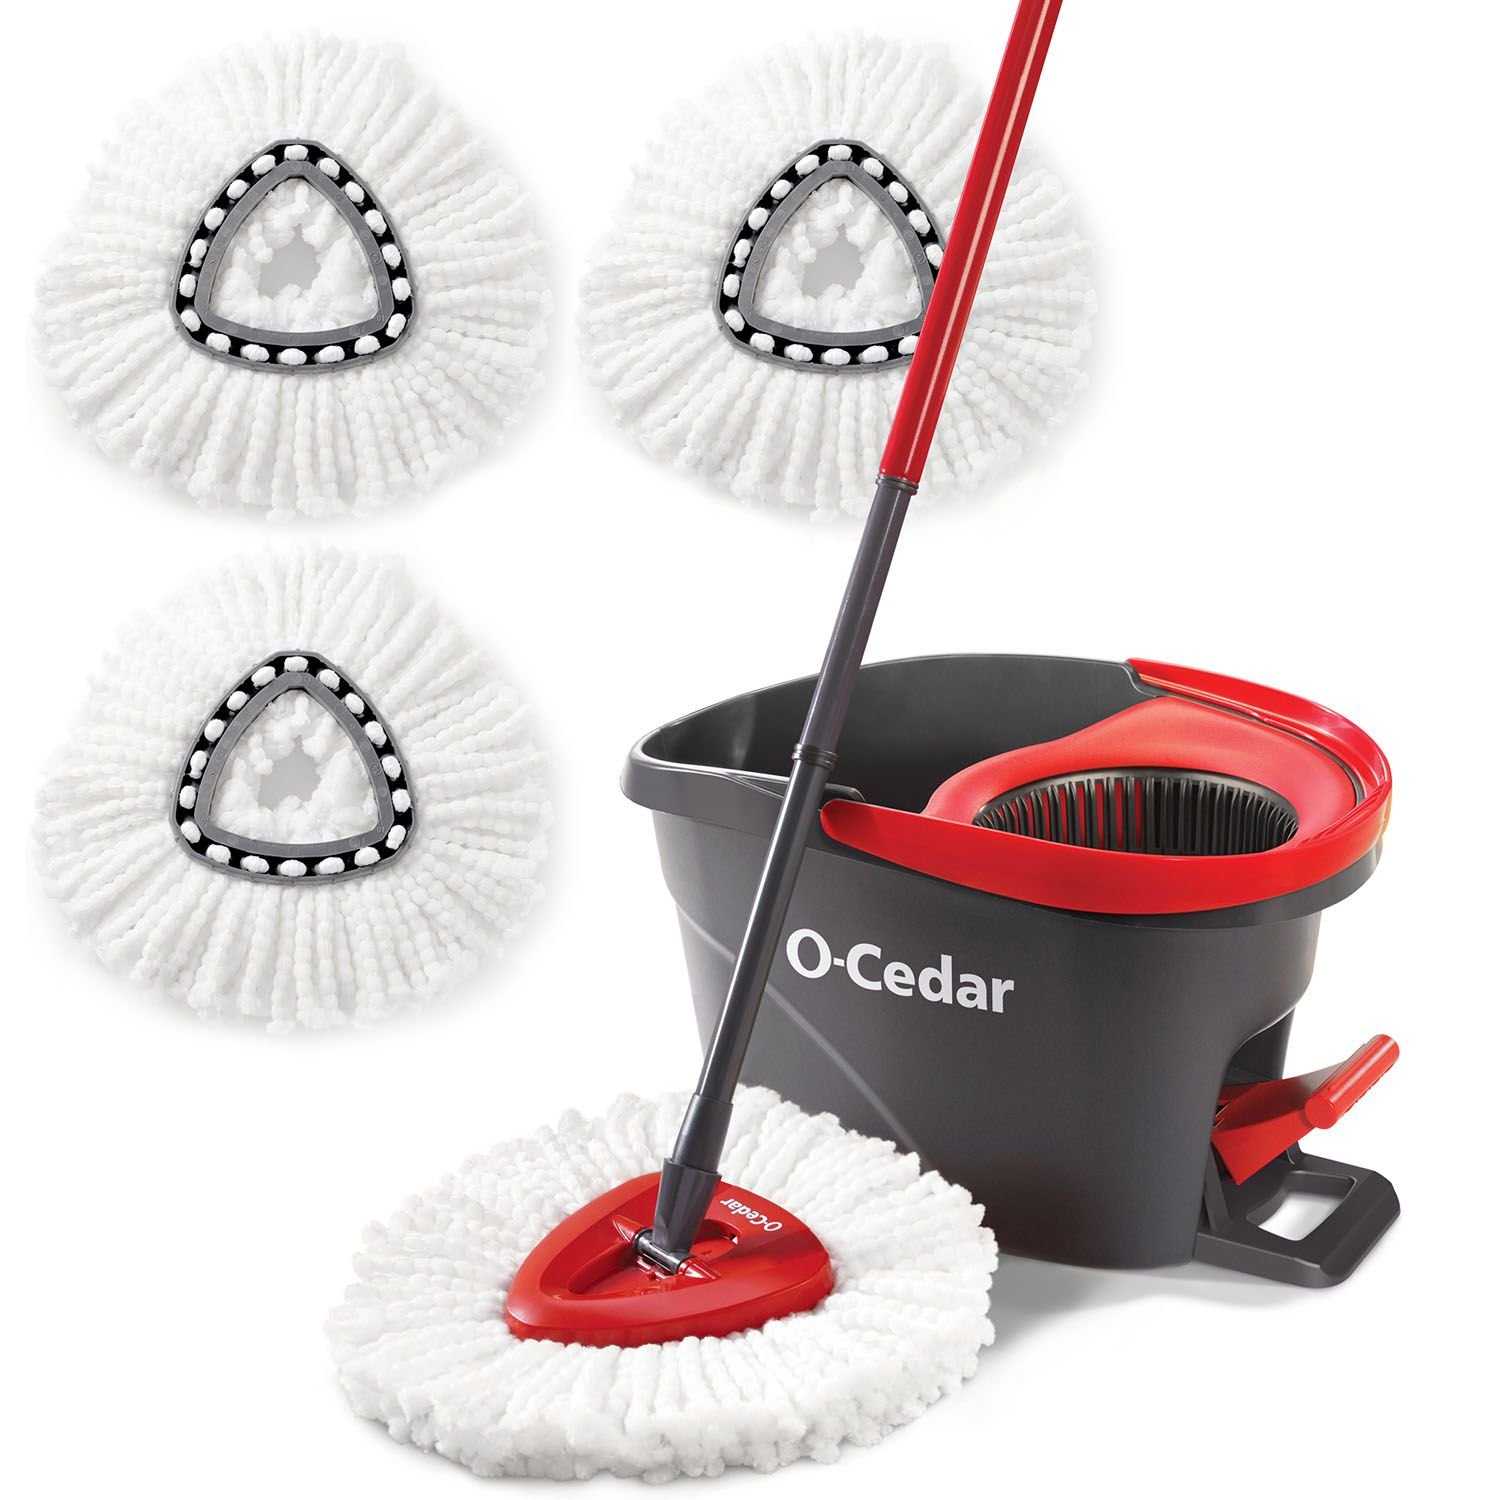 EasyWring Microfiber Spin Mop and Bucket Floor Cleaning System and an EasyWring Spin Mop Refill